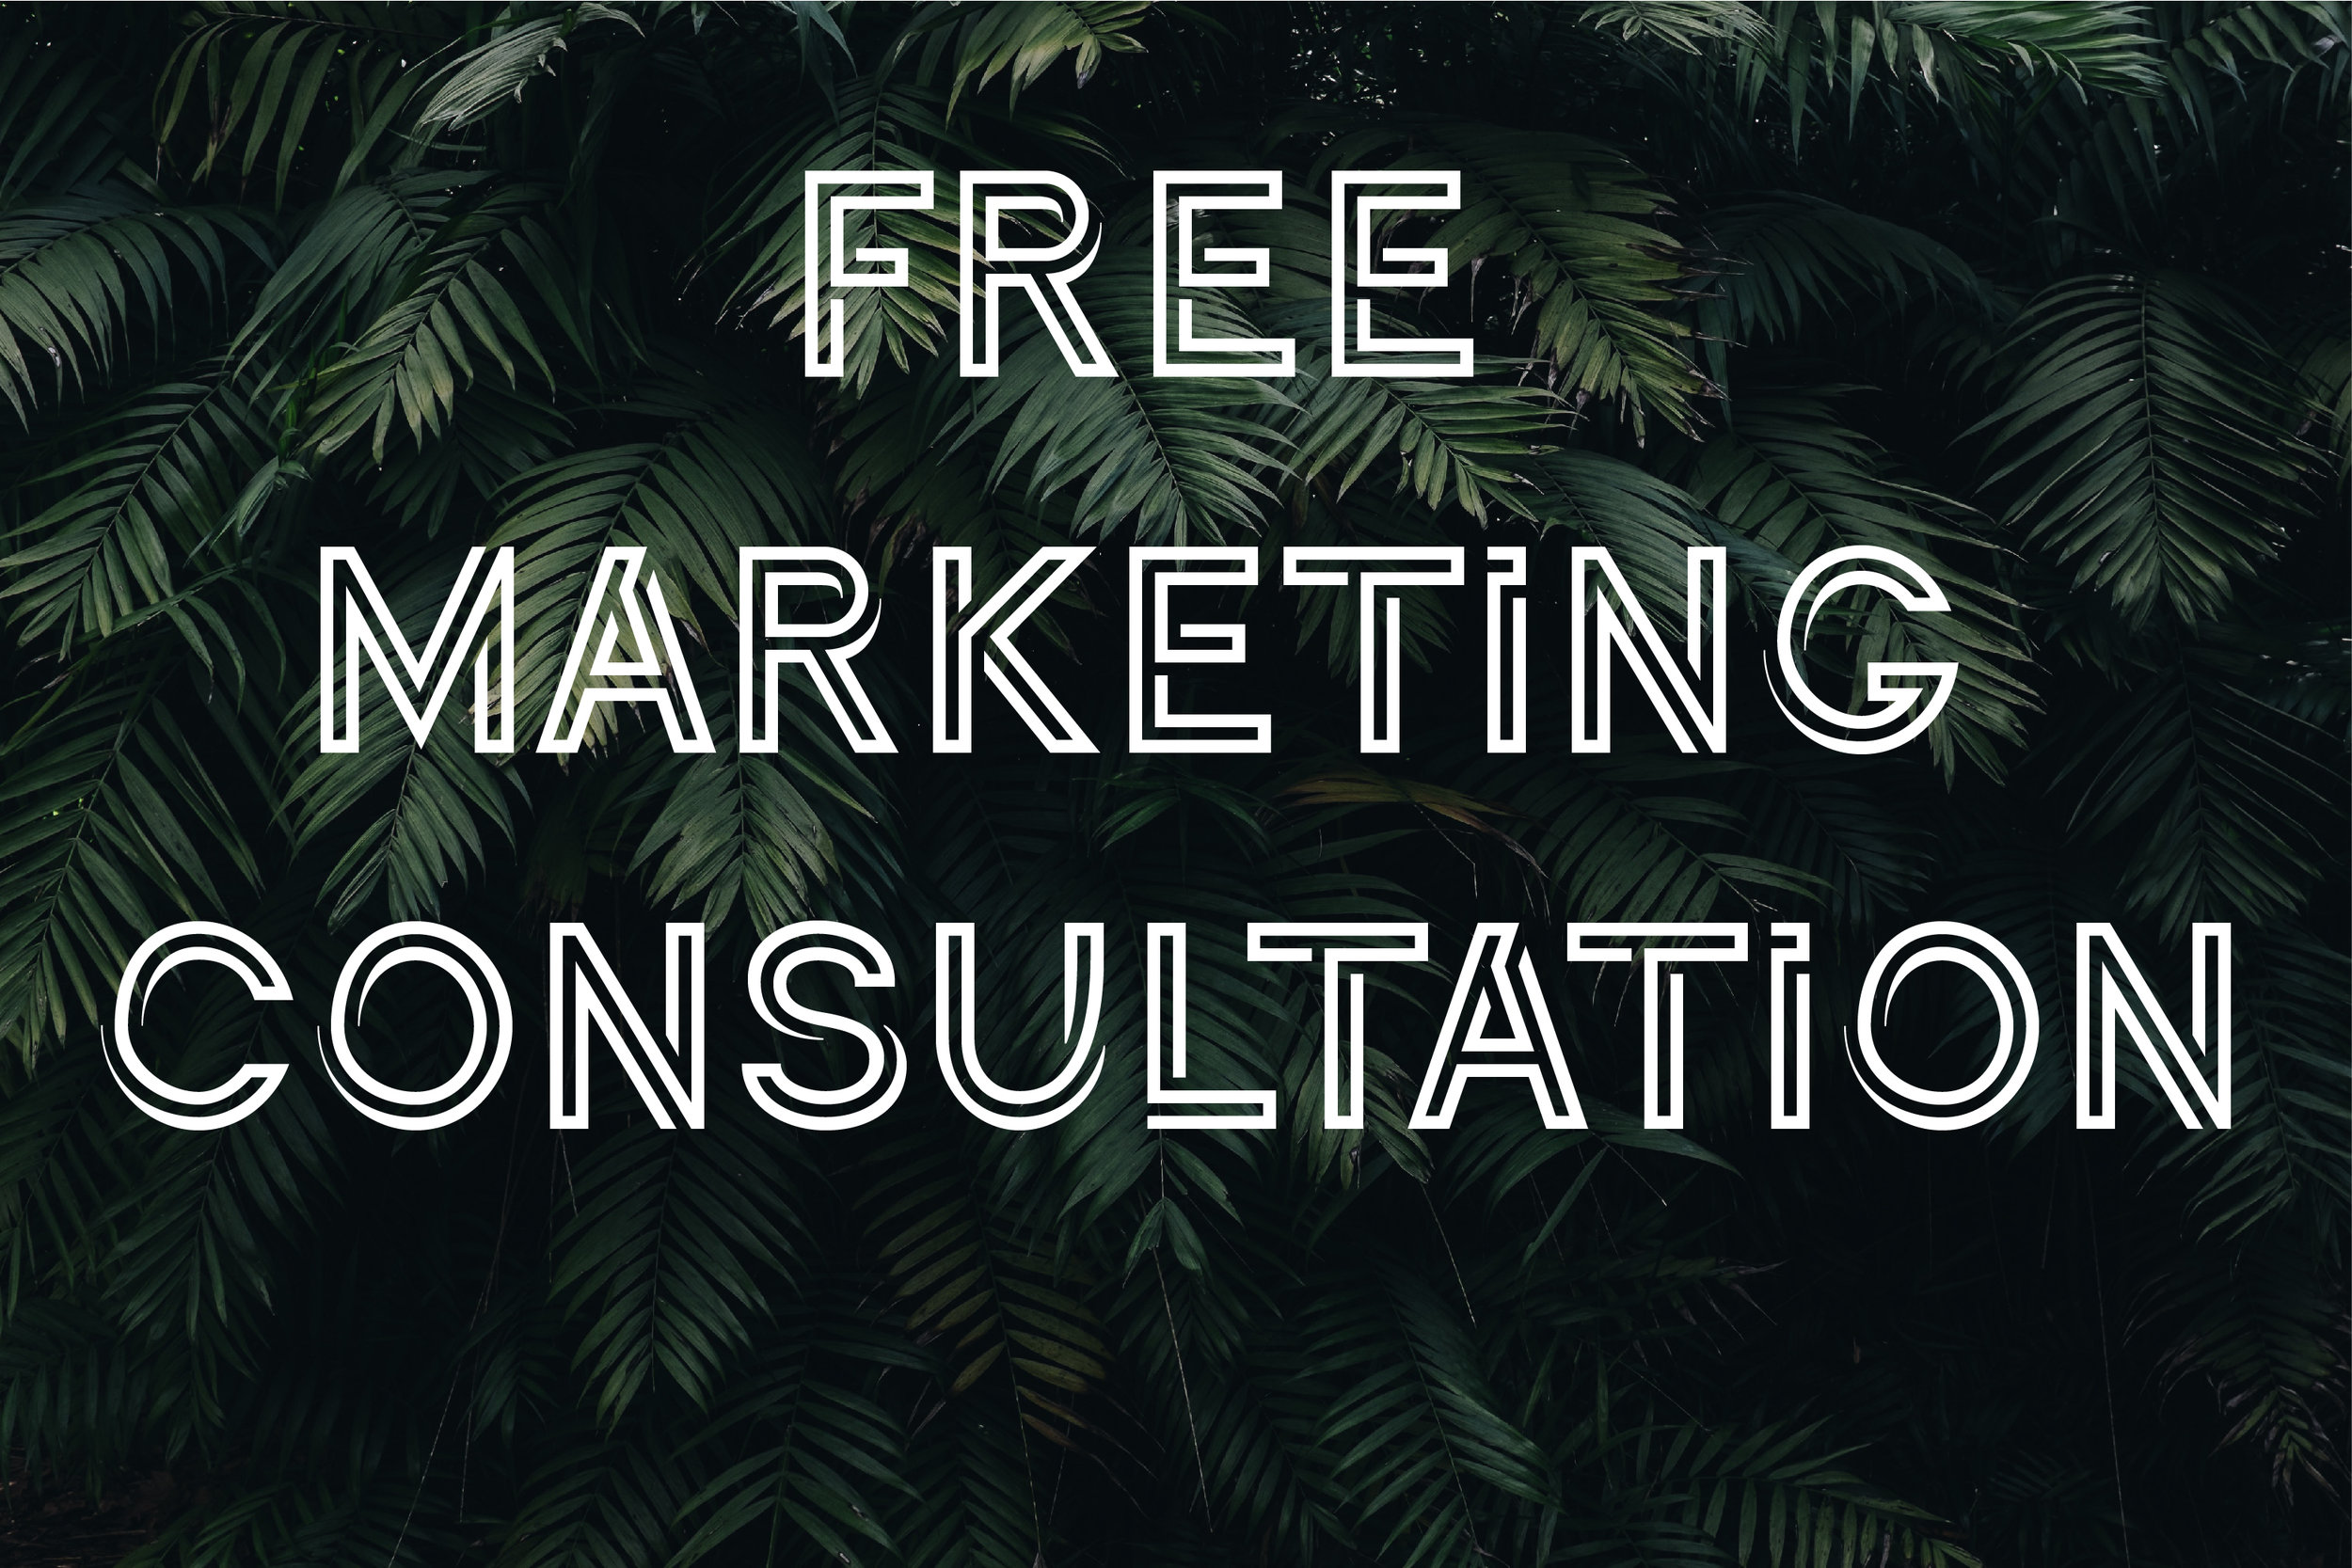 Free Marketing Consultation.jpg